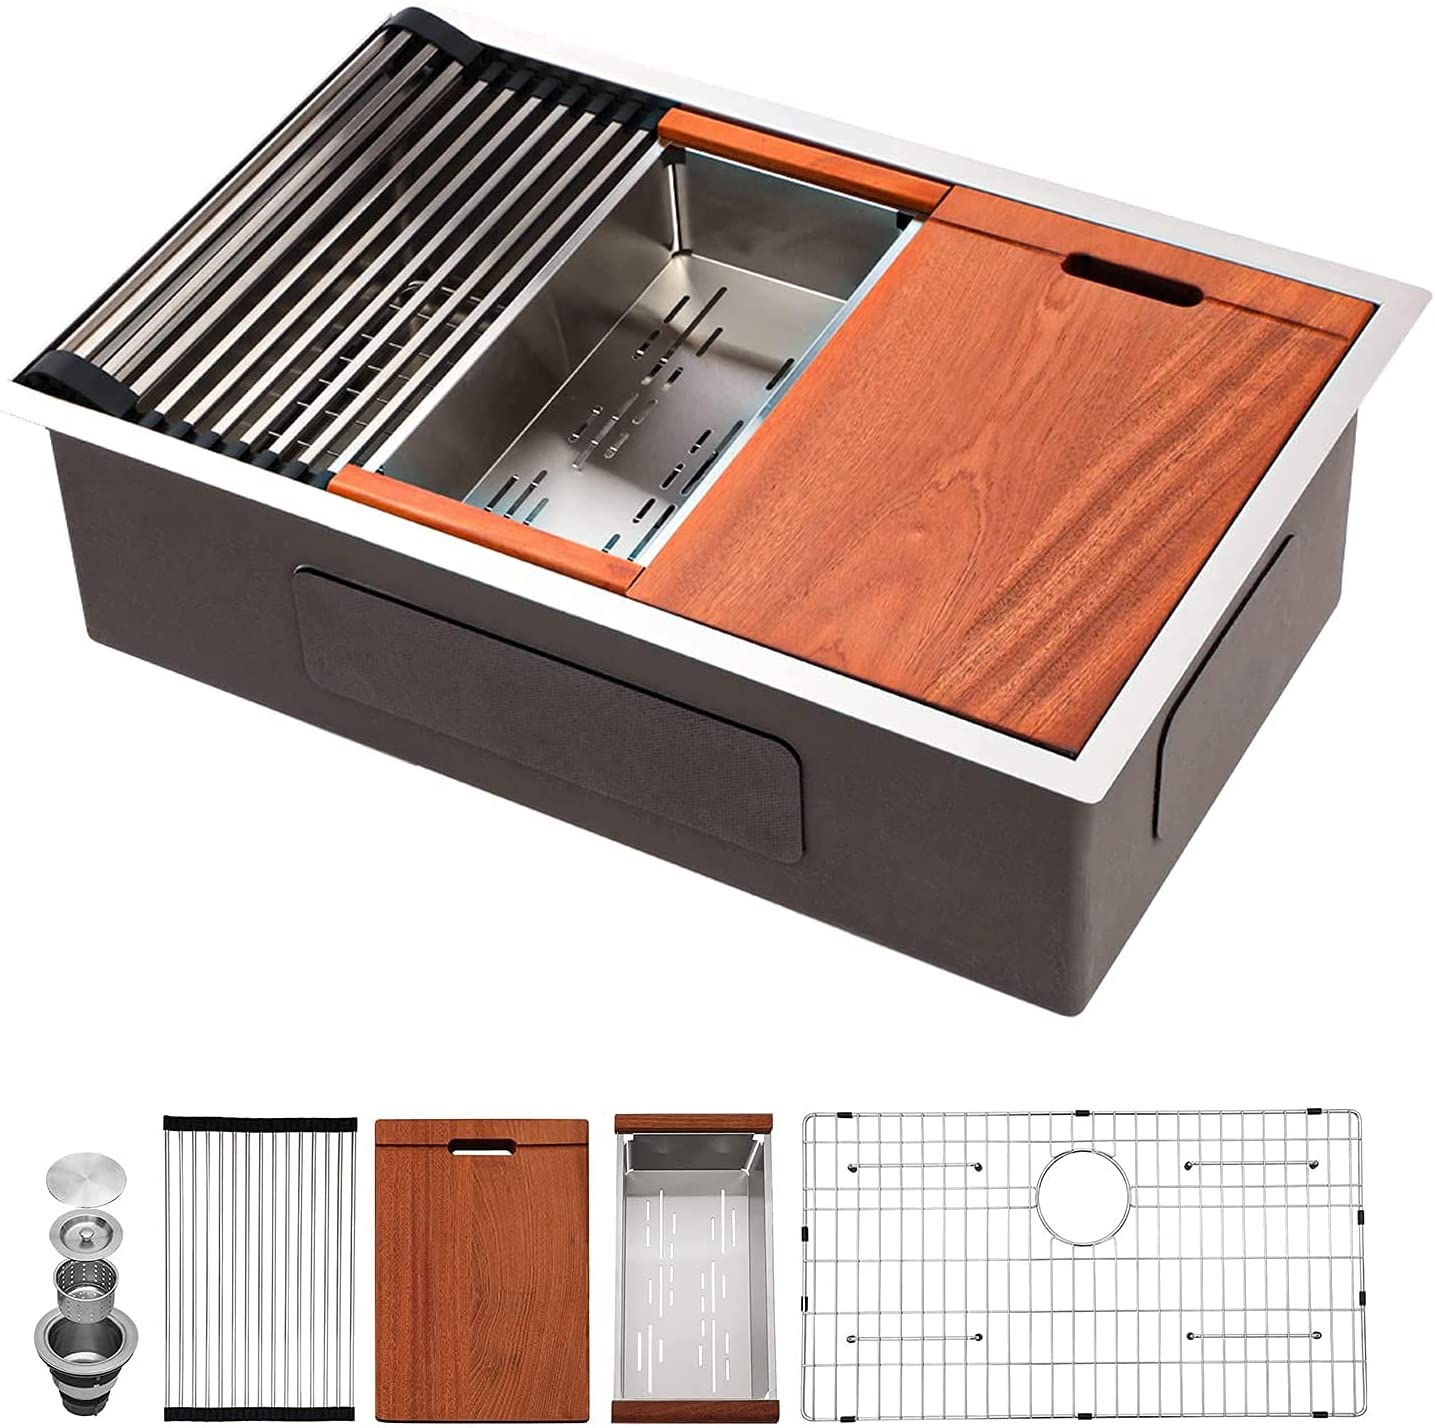 Undermount Low price Workstation Kitchen Sink 33 - Inch Same day shipping 16 Mocoloo x19